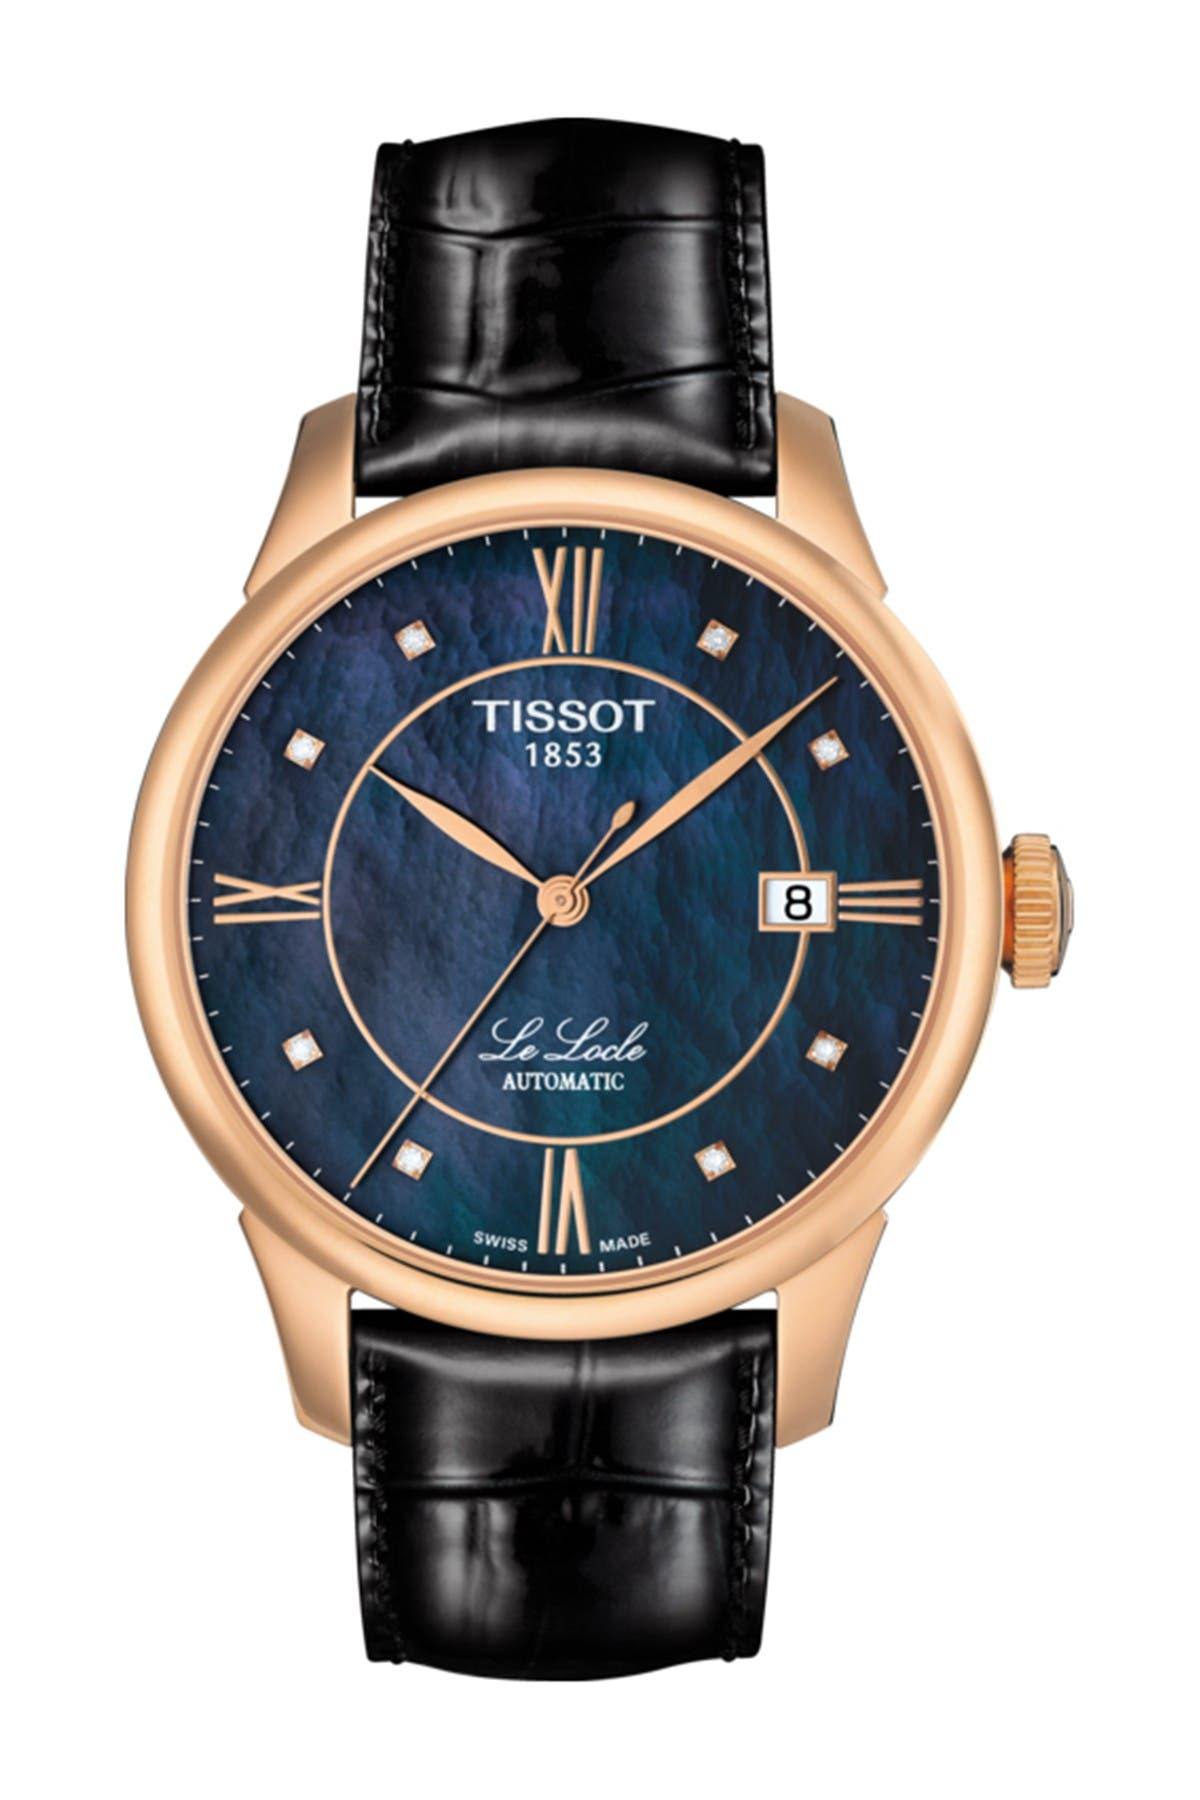 Image of Tissot Unisex Le Locle Automatic Diamond Dial Croc Embossed Leather Strap Watch, 39.3mm - 0.04 ctw